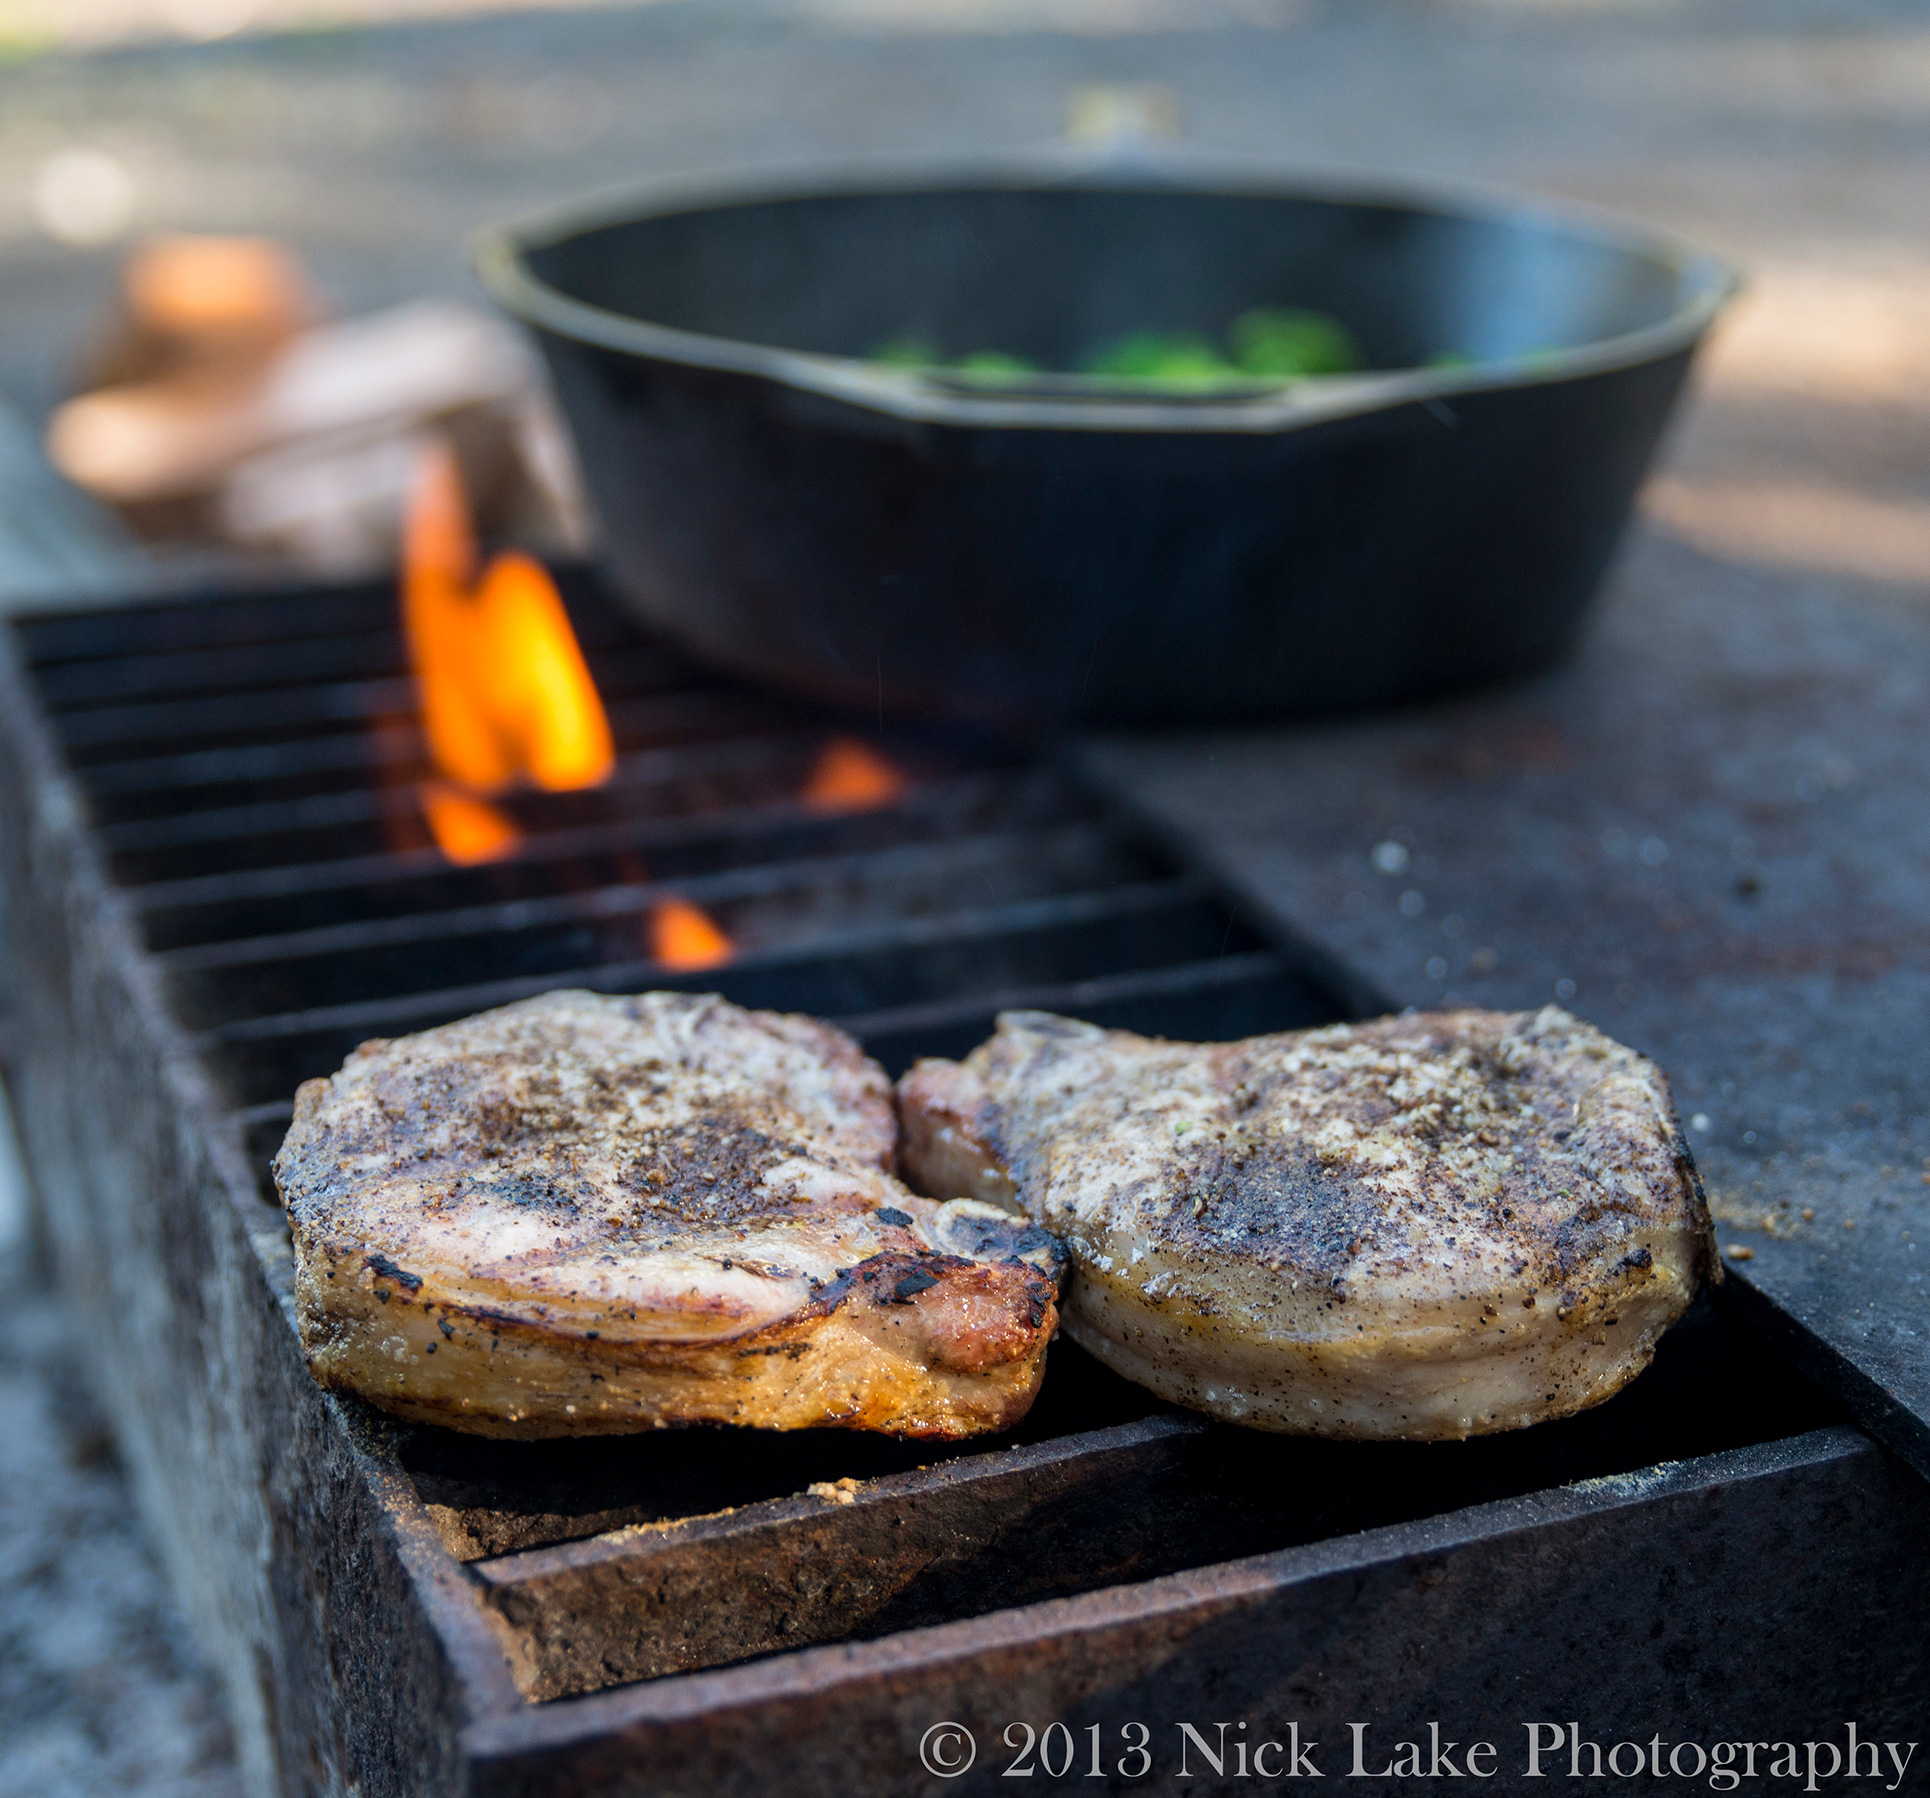 Tasty Pork Chops sizzle on the fire grate